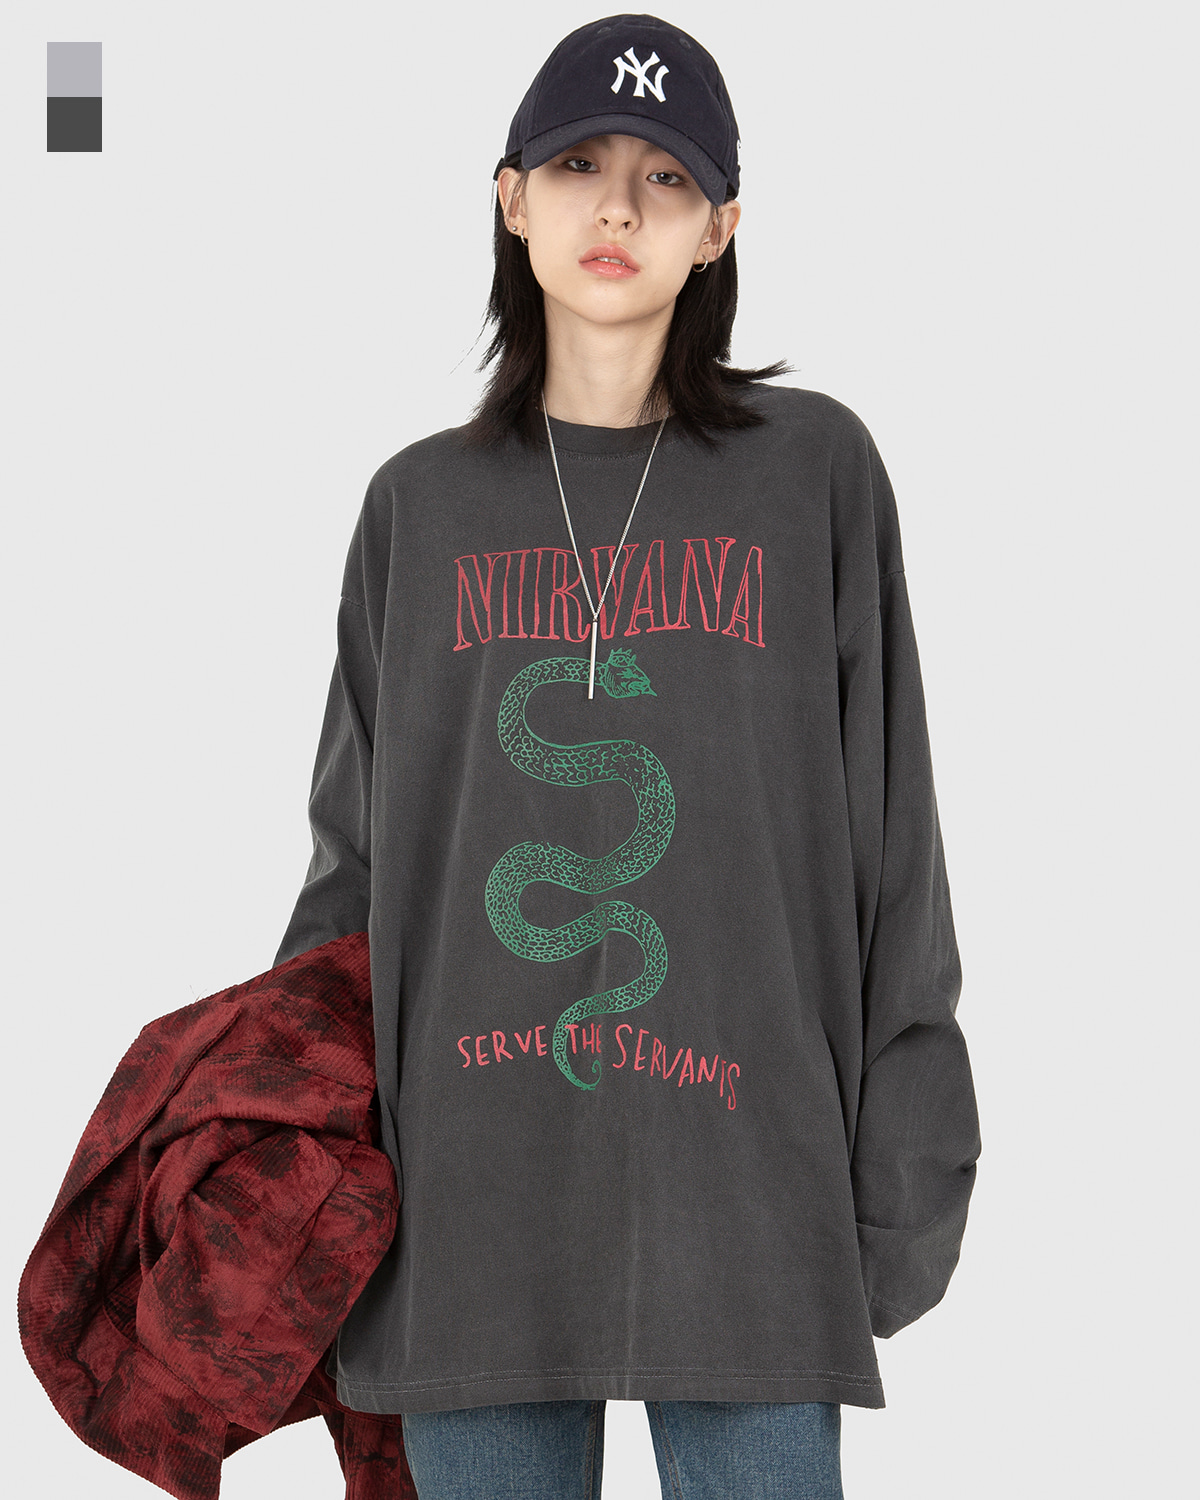 raucohouse-NIRVANA SERVANTS DYEING LONG SLEEVE T - RAUCO HOUSE♡韓國男裝上衣